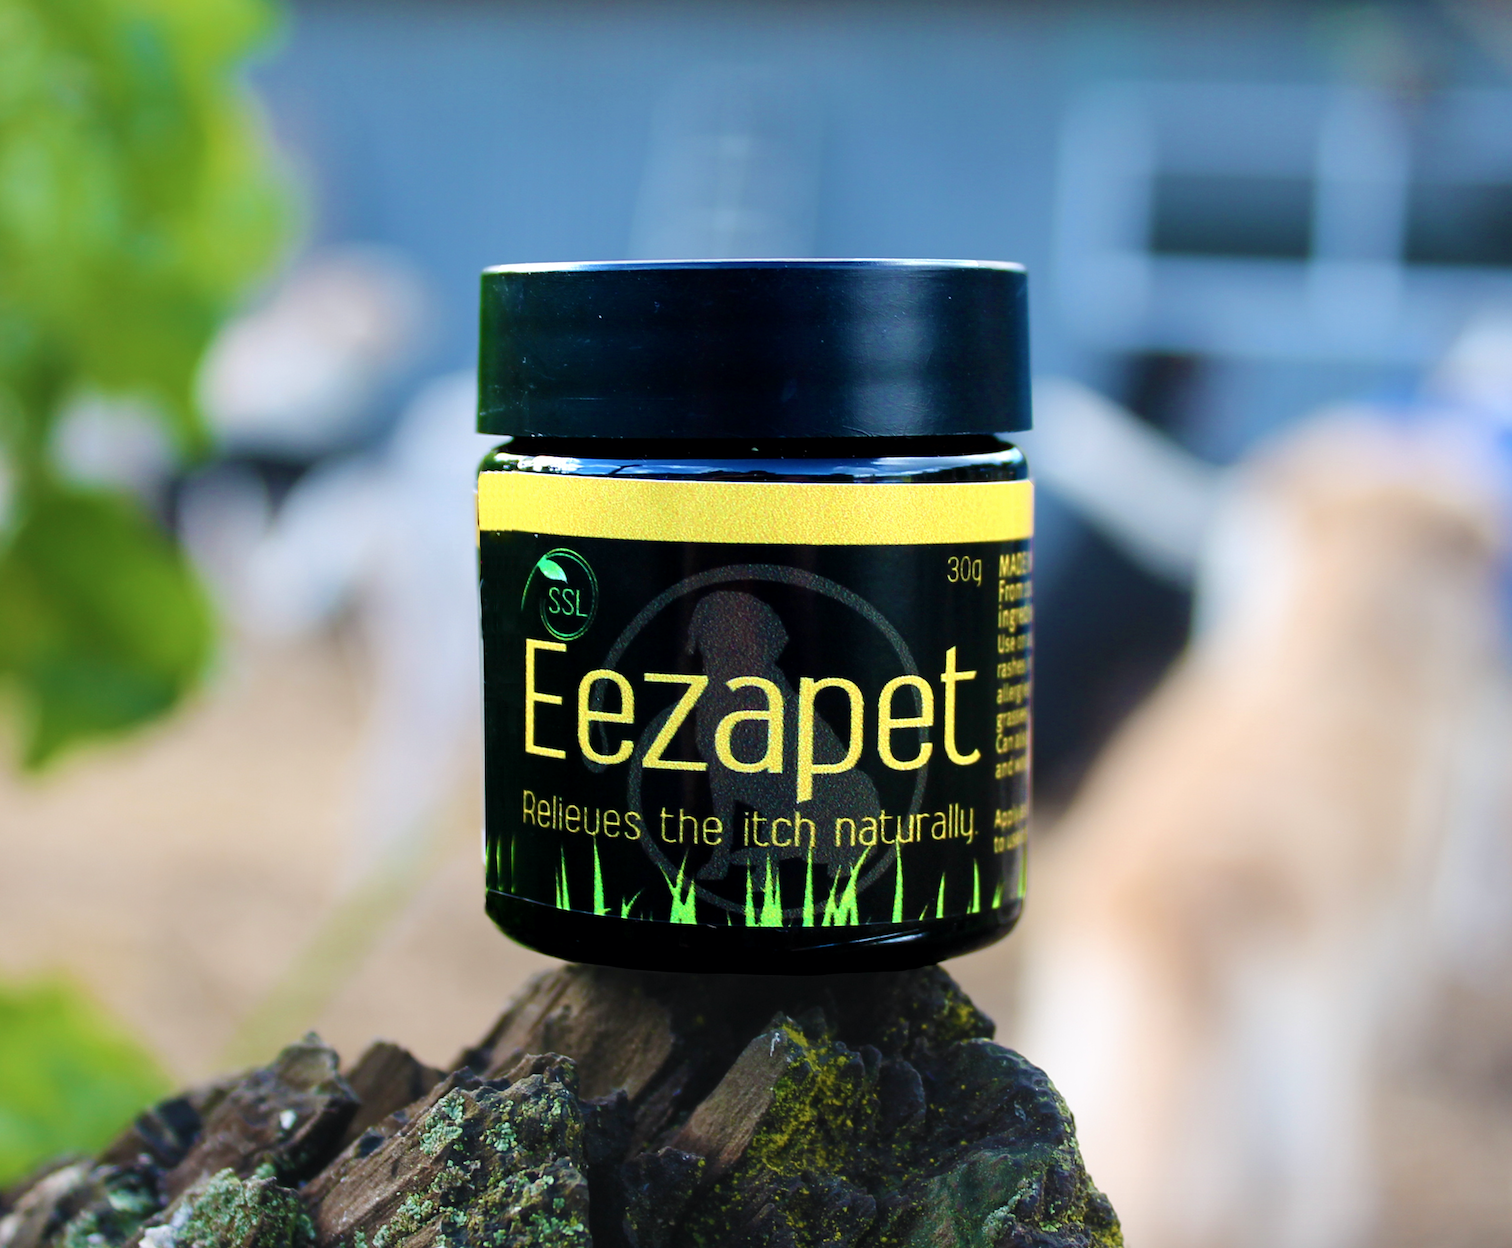 Eezapet, Dog itch, Itchy dog, Dog allergies, NZ made, natural dog products